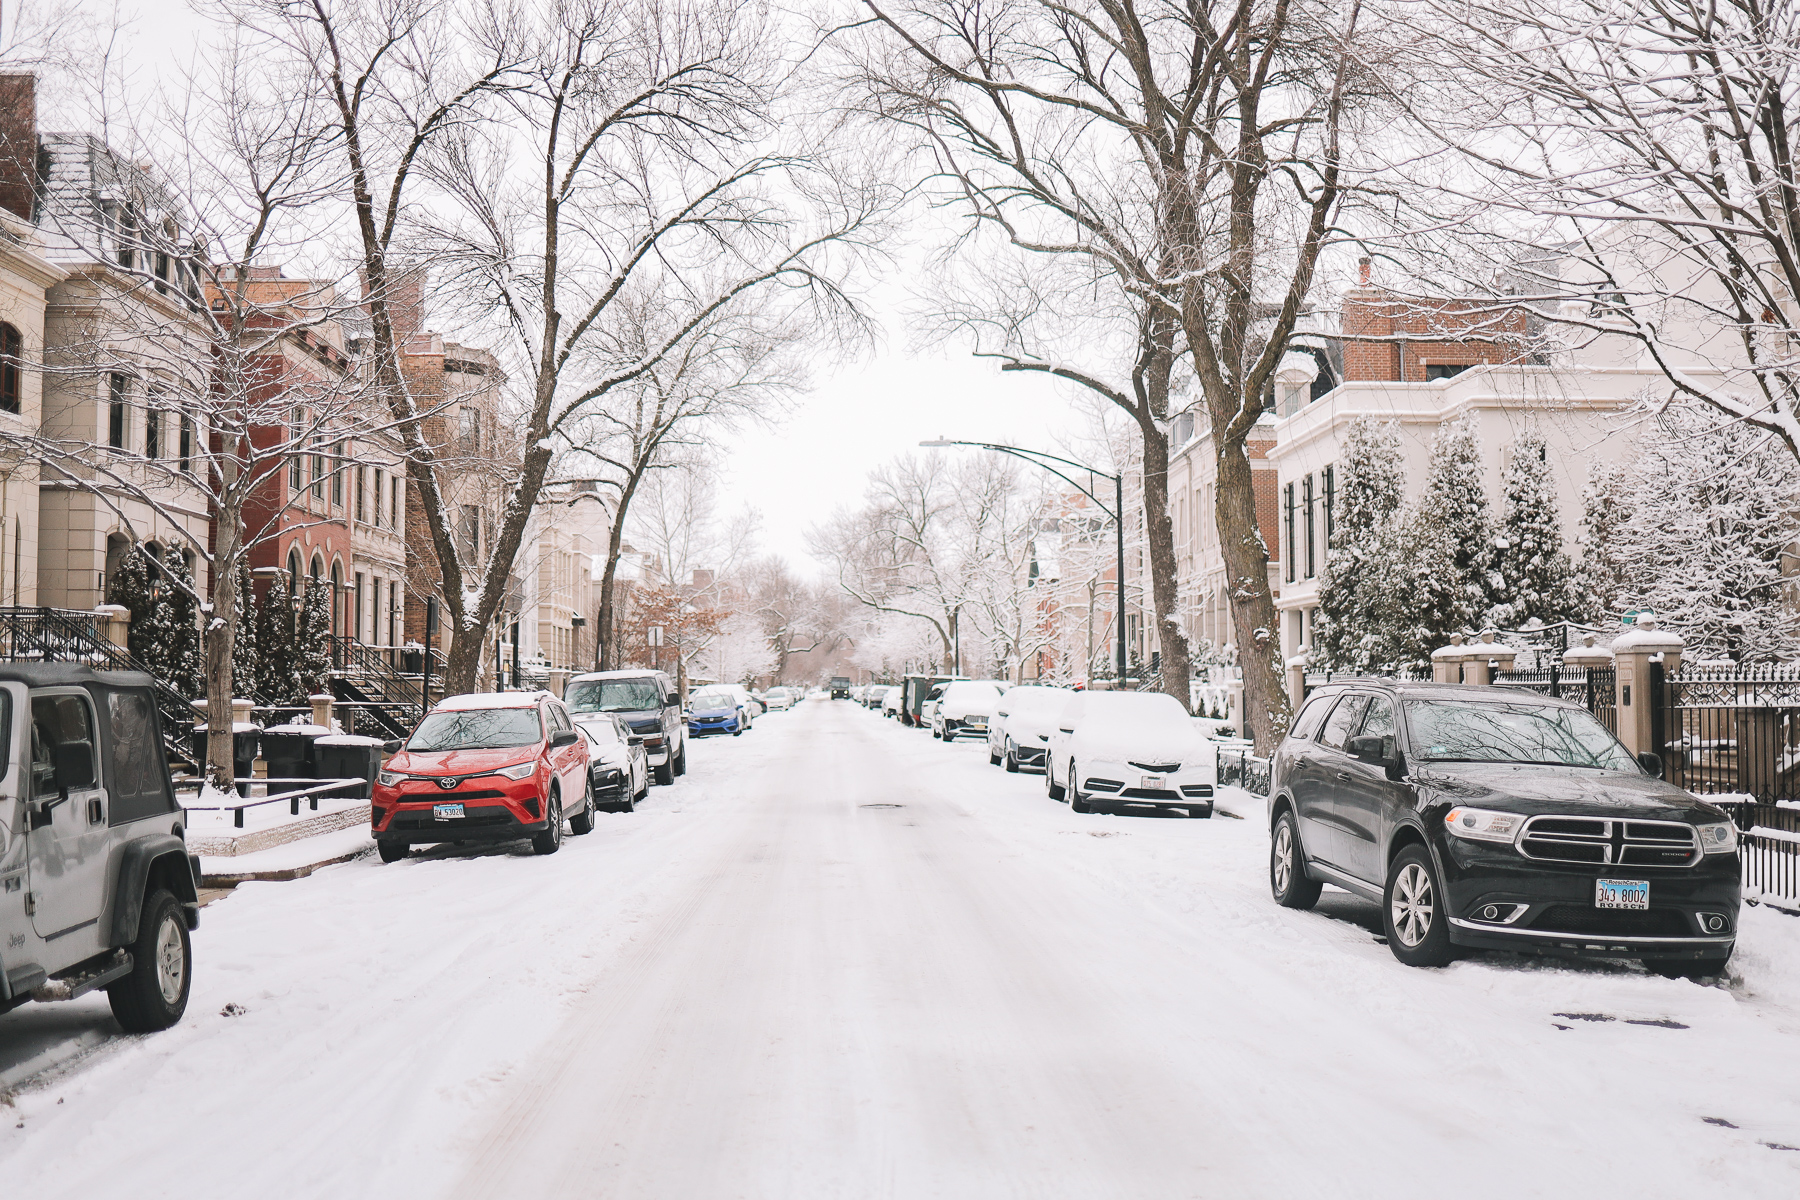 snowy chicago streets | Happiness Walk Through Lincoln Park